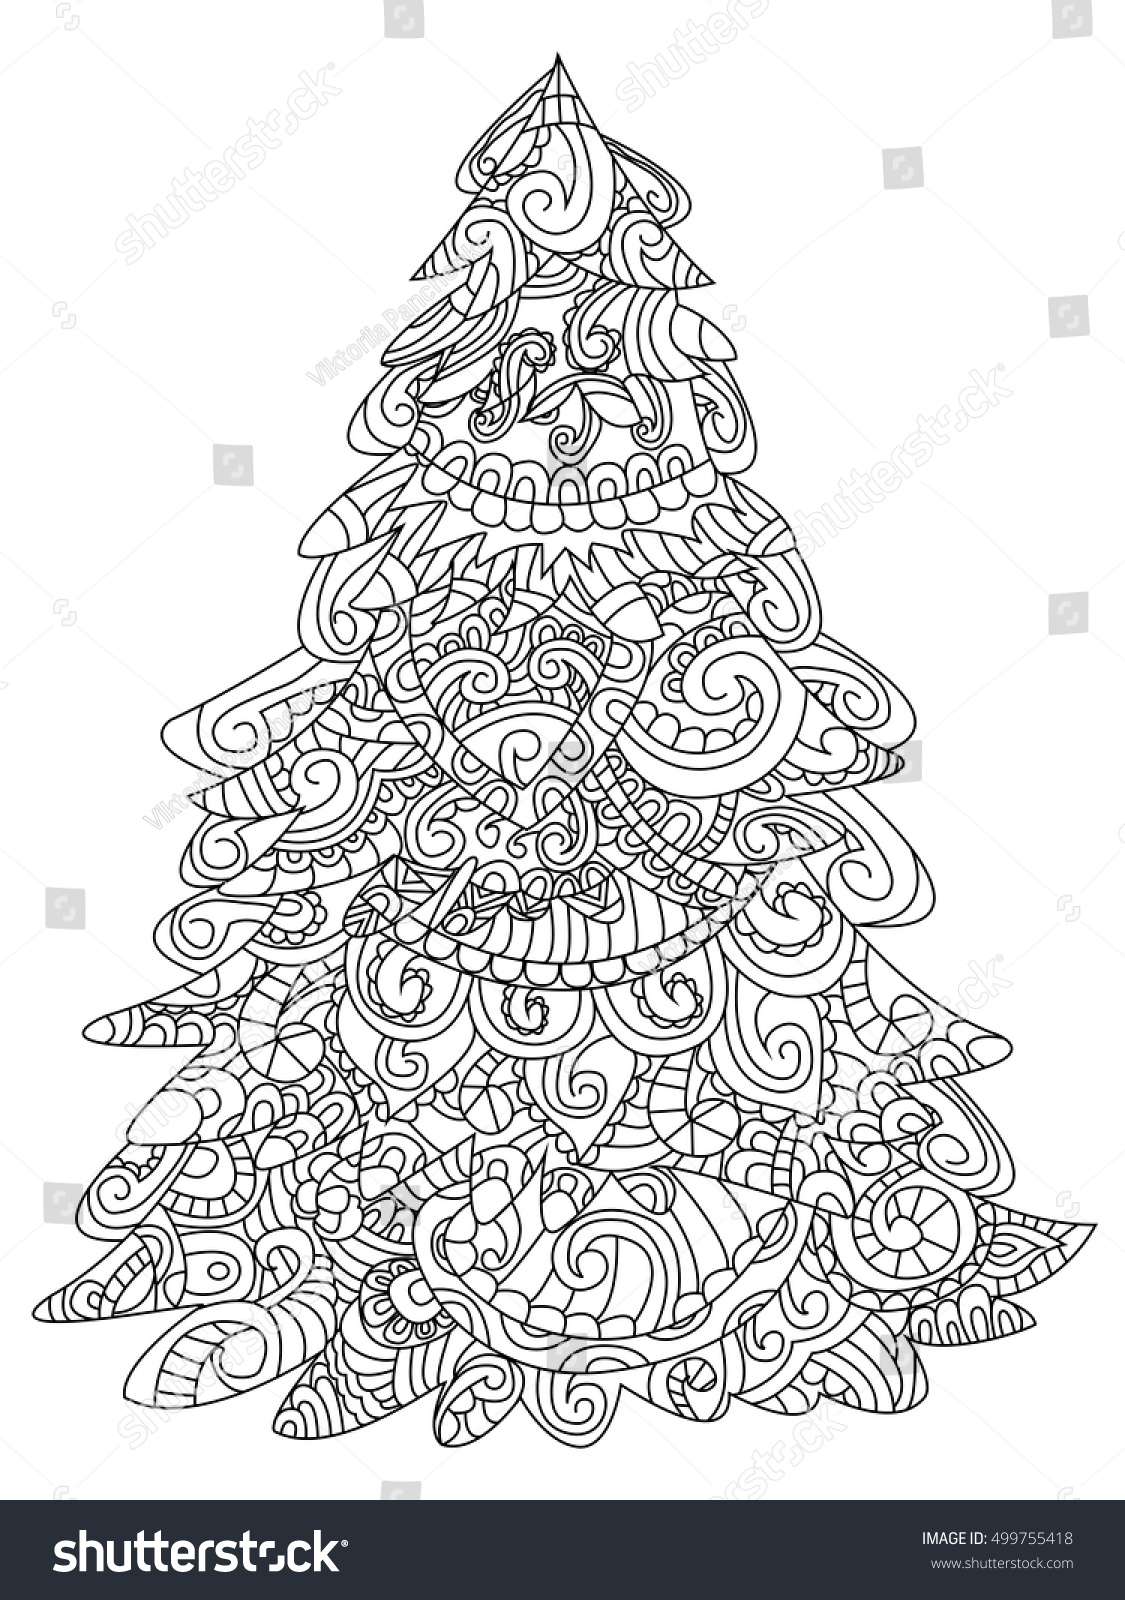 Christmas Coloring Book Vector With Tree Illustration Stock